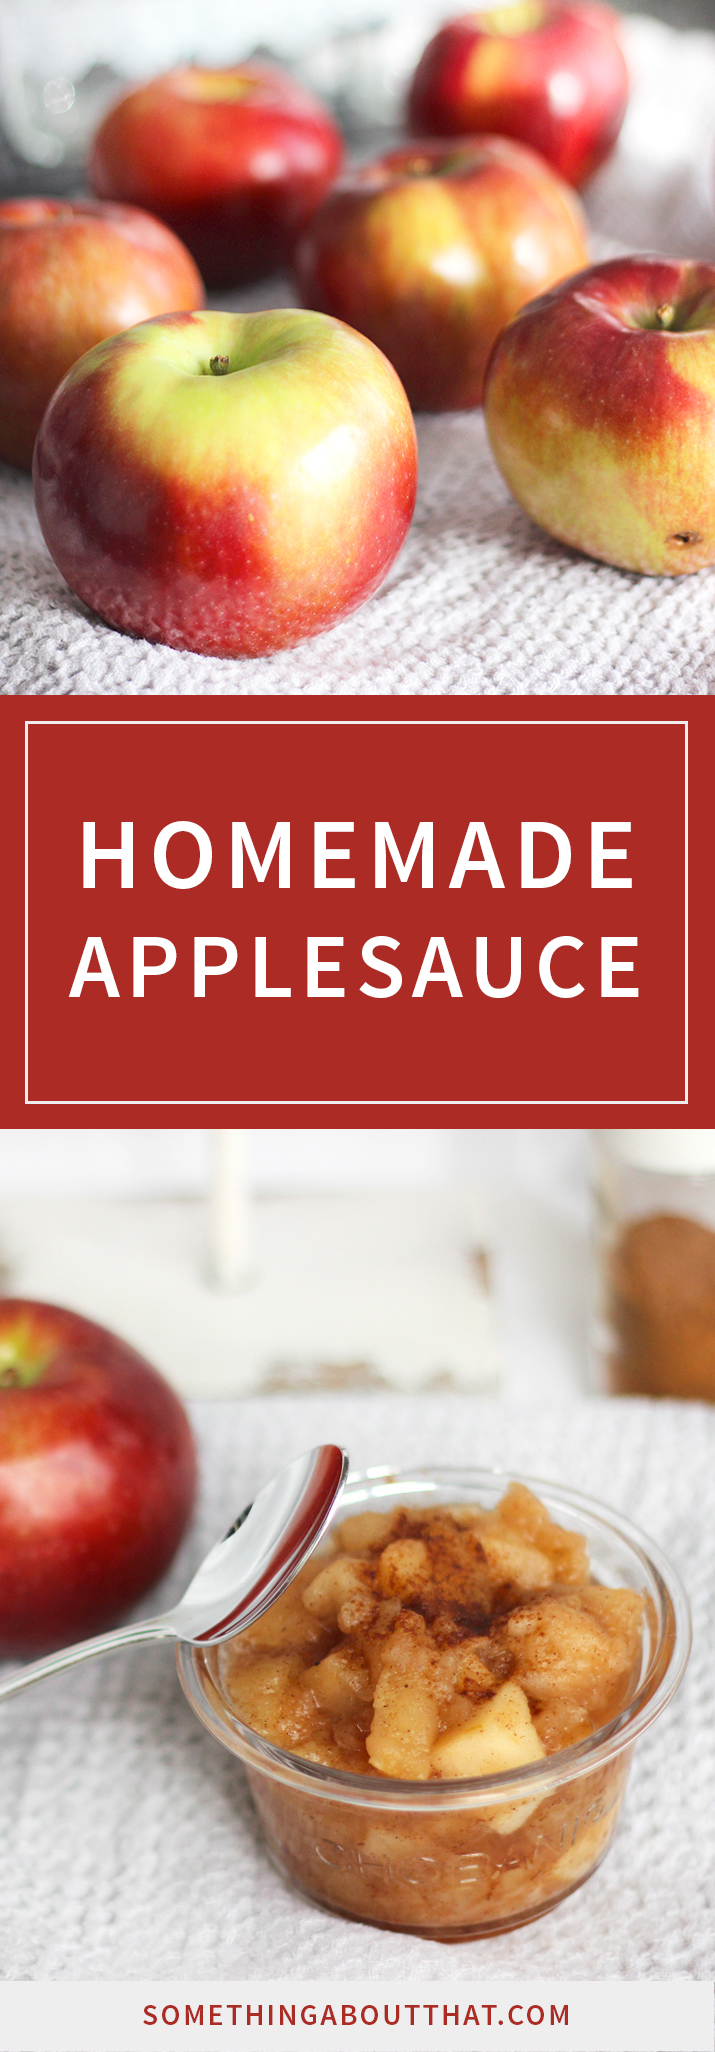 Easy homemade applesauce recipe - this is a perfect fall dessert or snack.